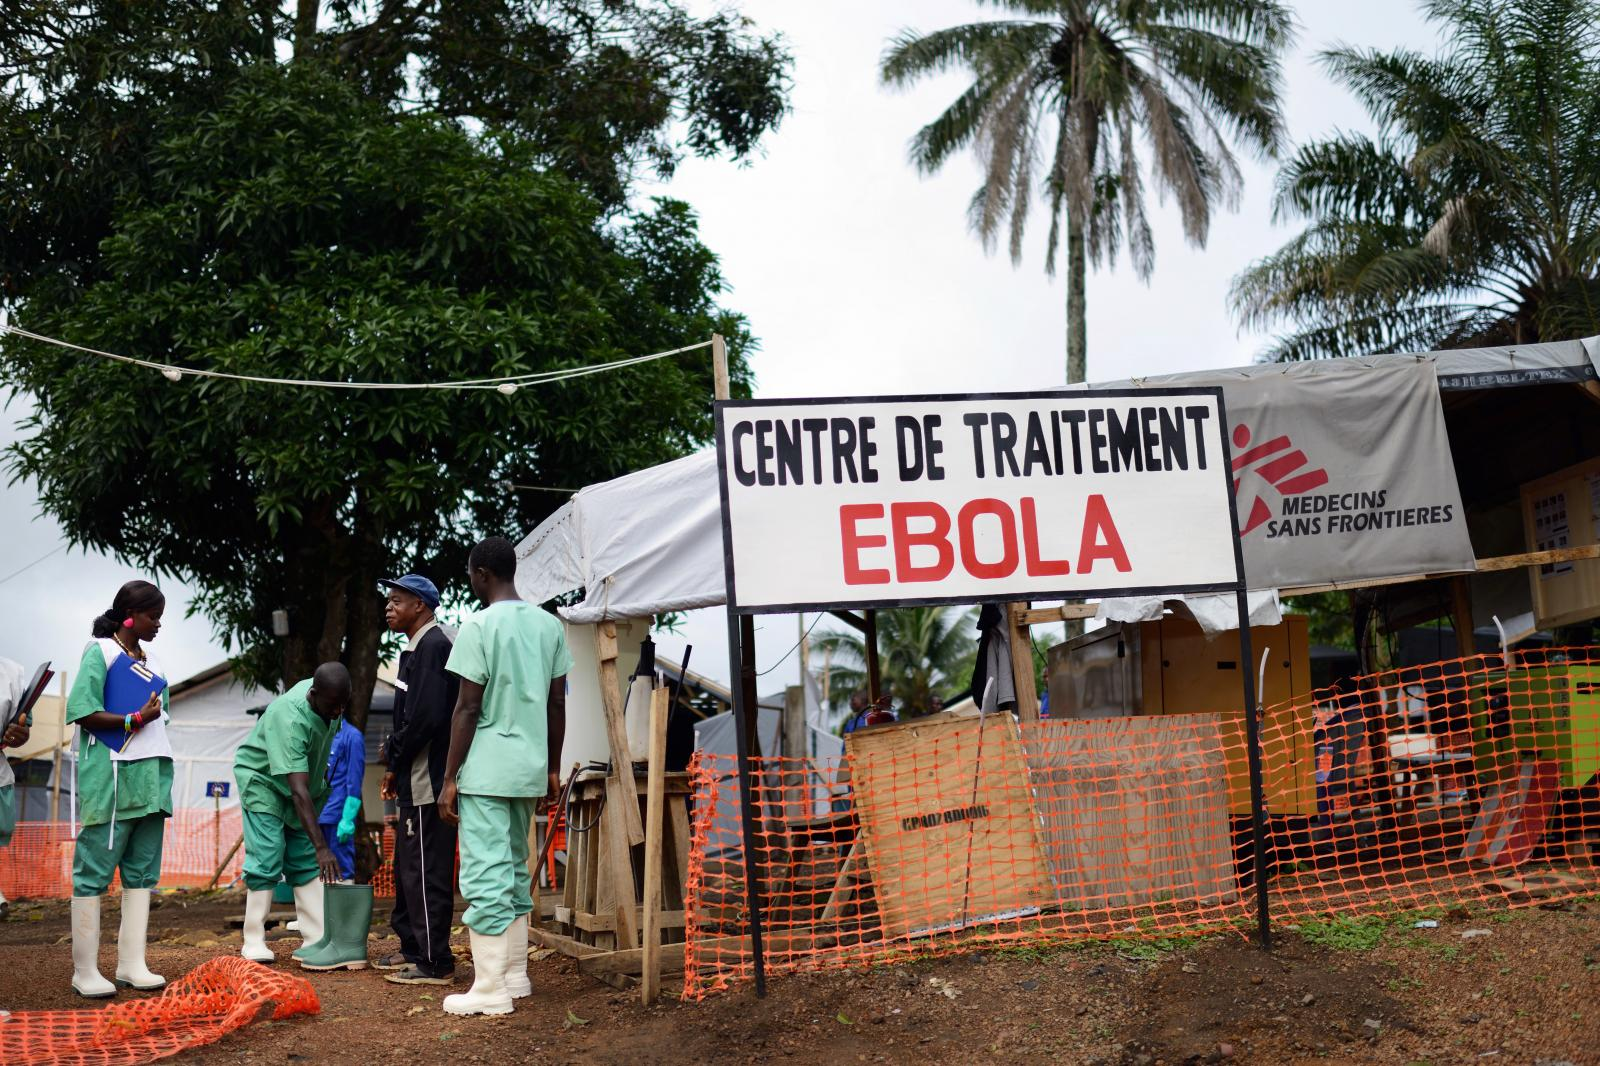 An Ebola treatment center in Gueckedou, Guinea, July 2014